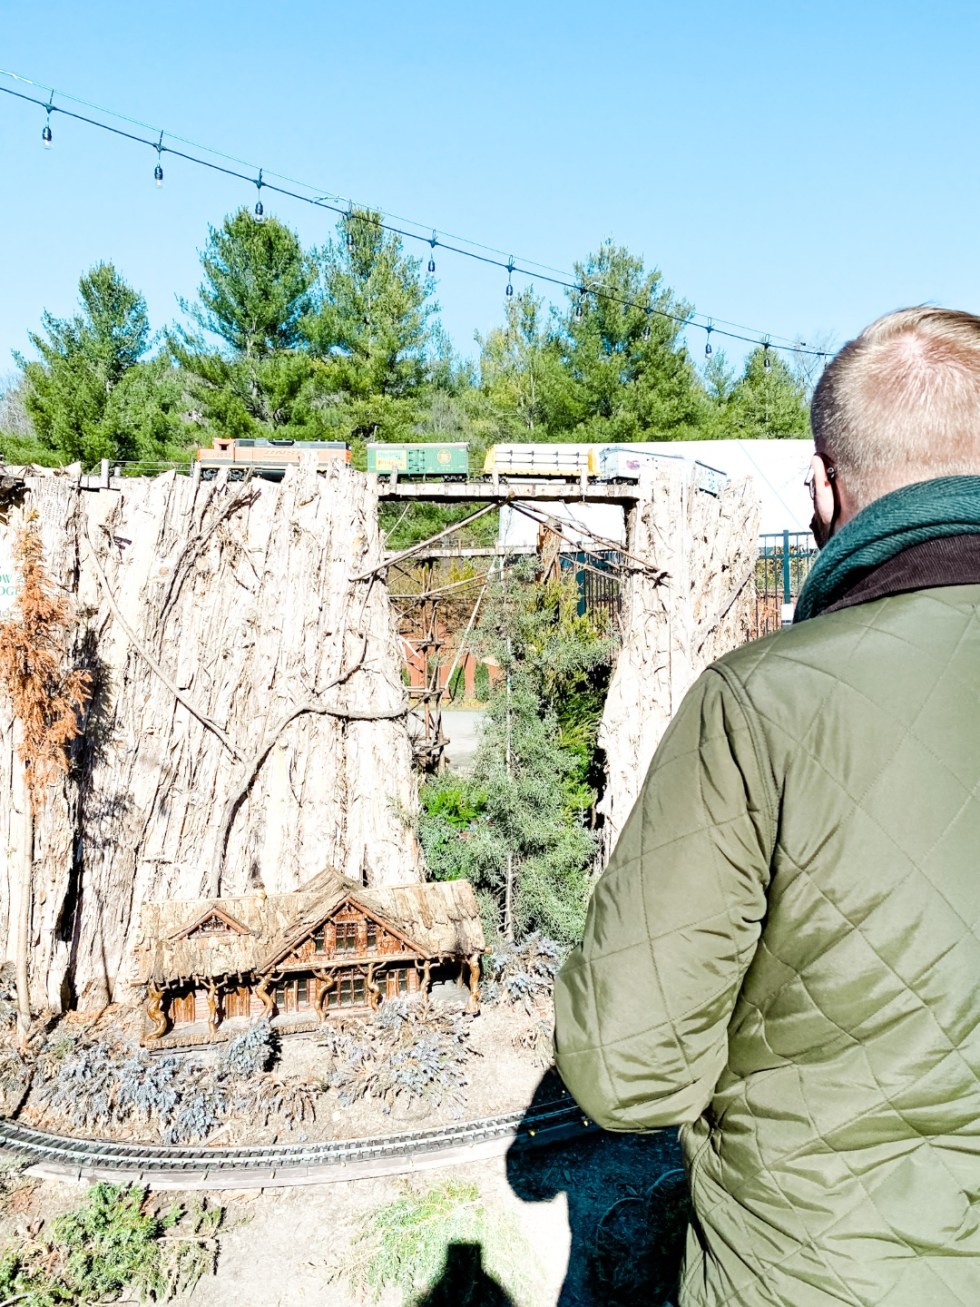 Christmas in Asheville: a Weekend Getaway During the Holidays - I'm Fixin' To - @imfixintoblog |Christmas in Asheville NC by popular NC lifestyle blog, I'm Fixin' To: image of miniature train track at  Antler Hill Village.